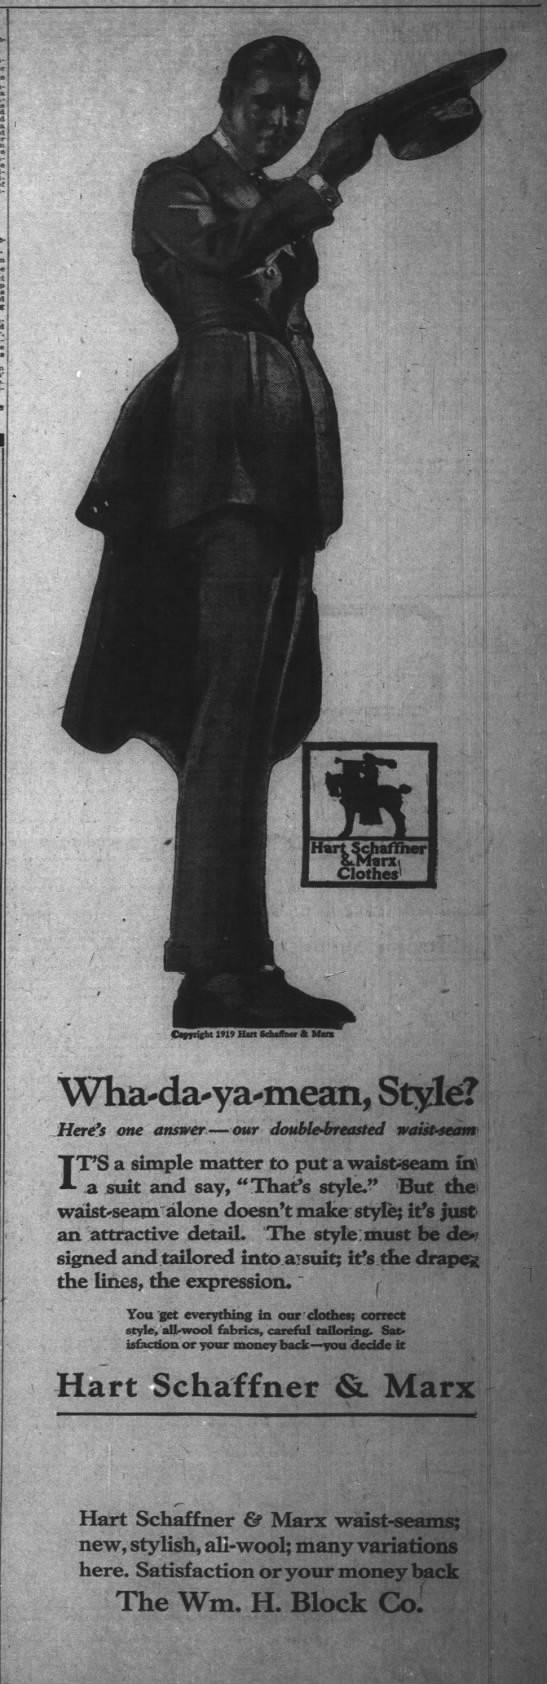 The Indianapolis News, 22 April 1919, p. 5.